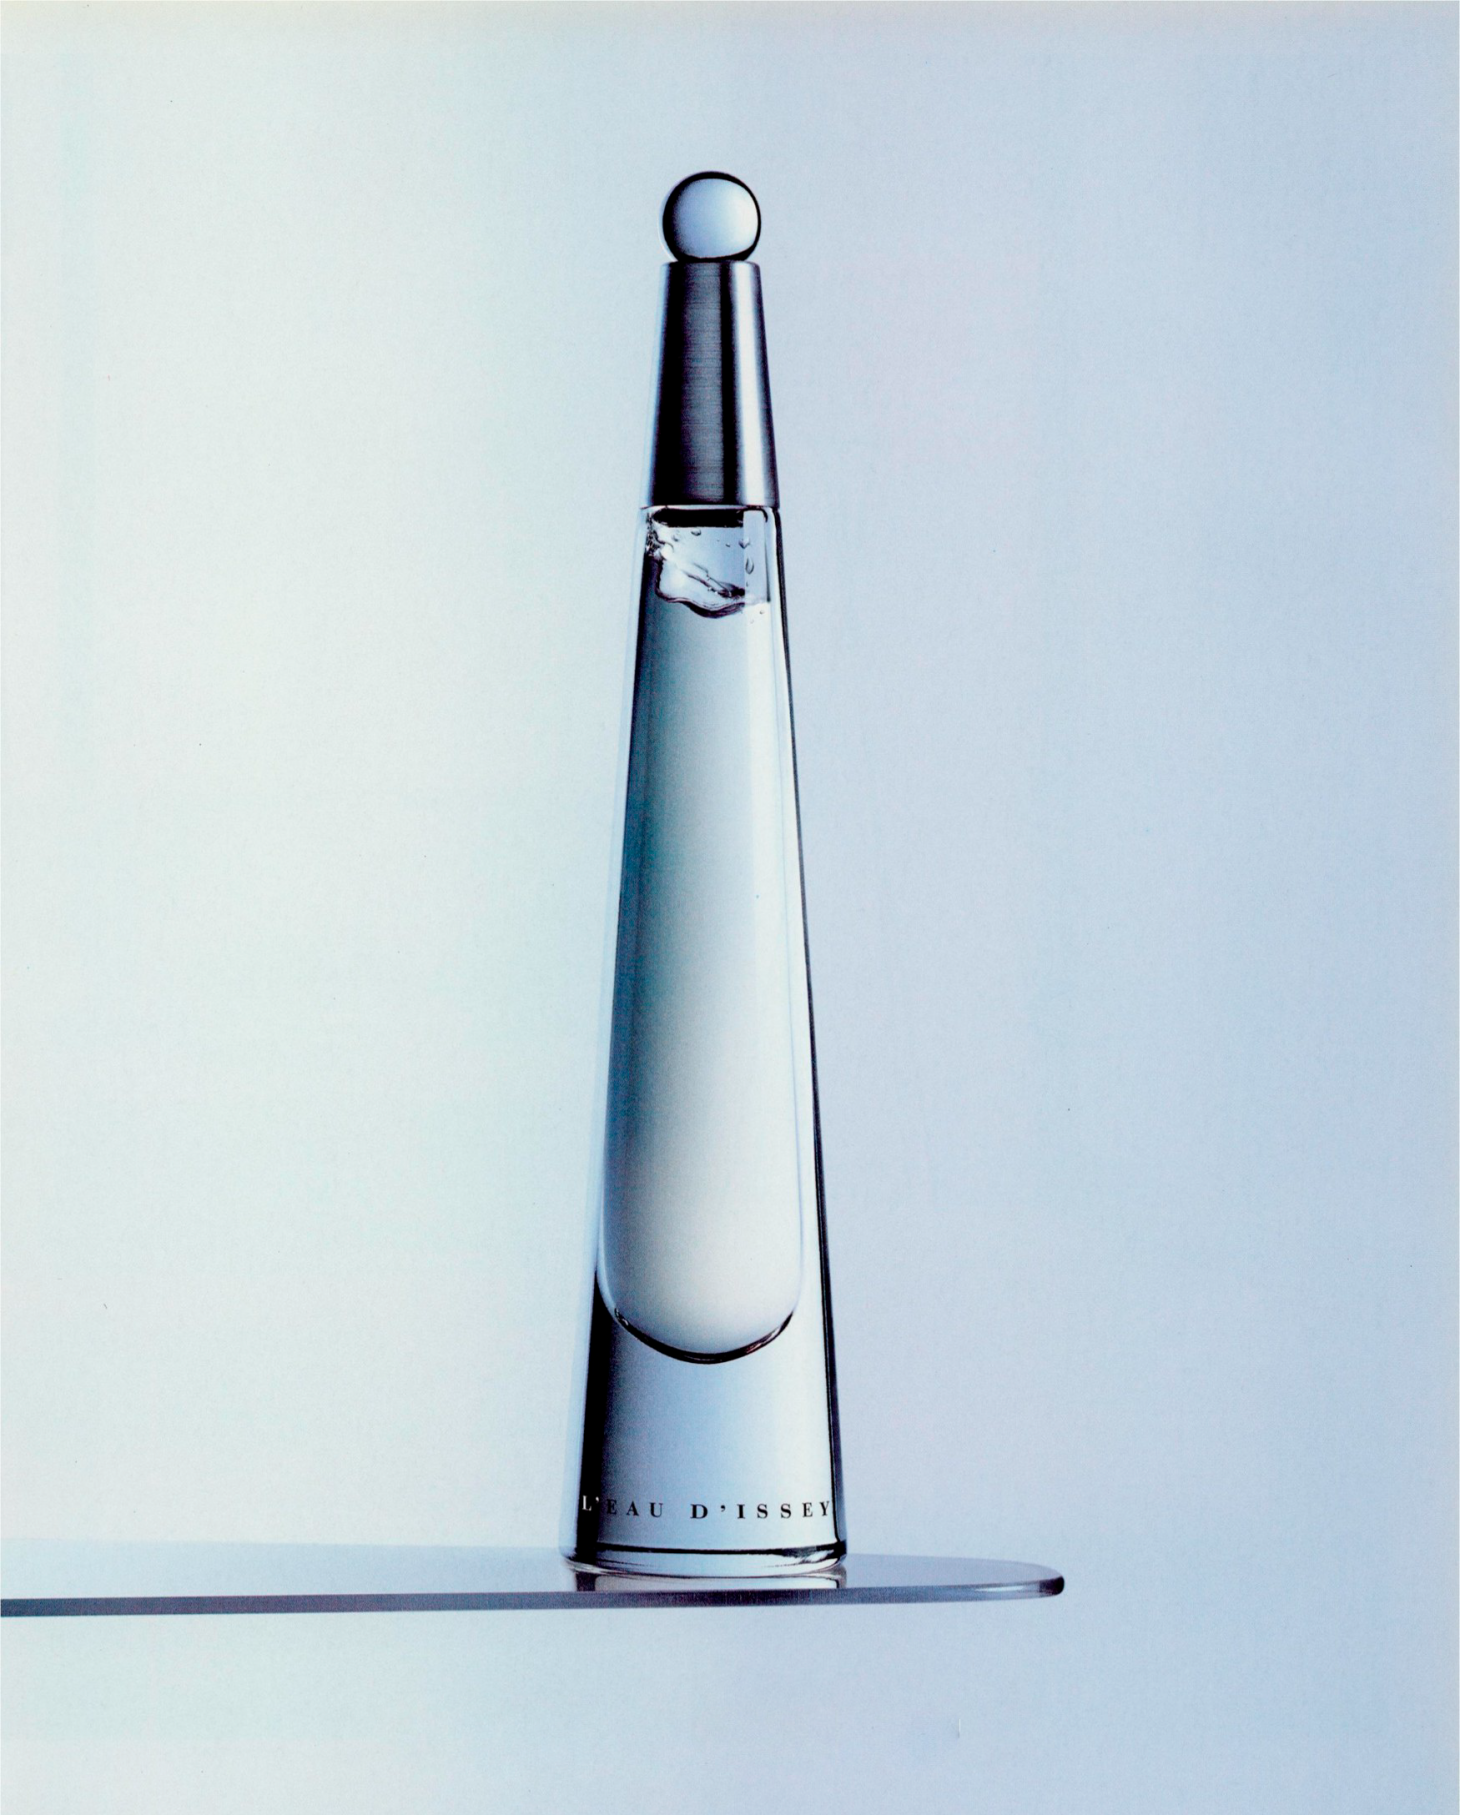 An original campaign image forL'eau d'Issey, the revolutionary perfume by Issey Miyake